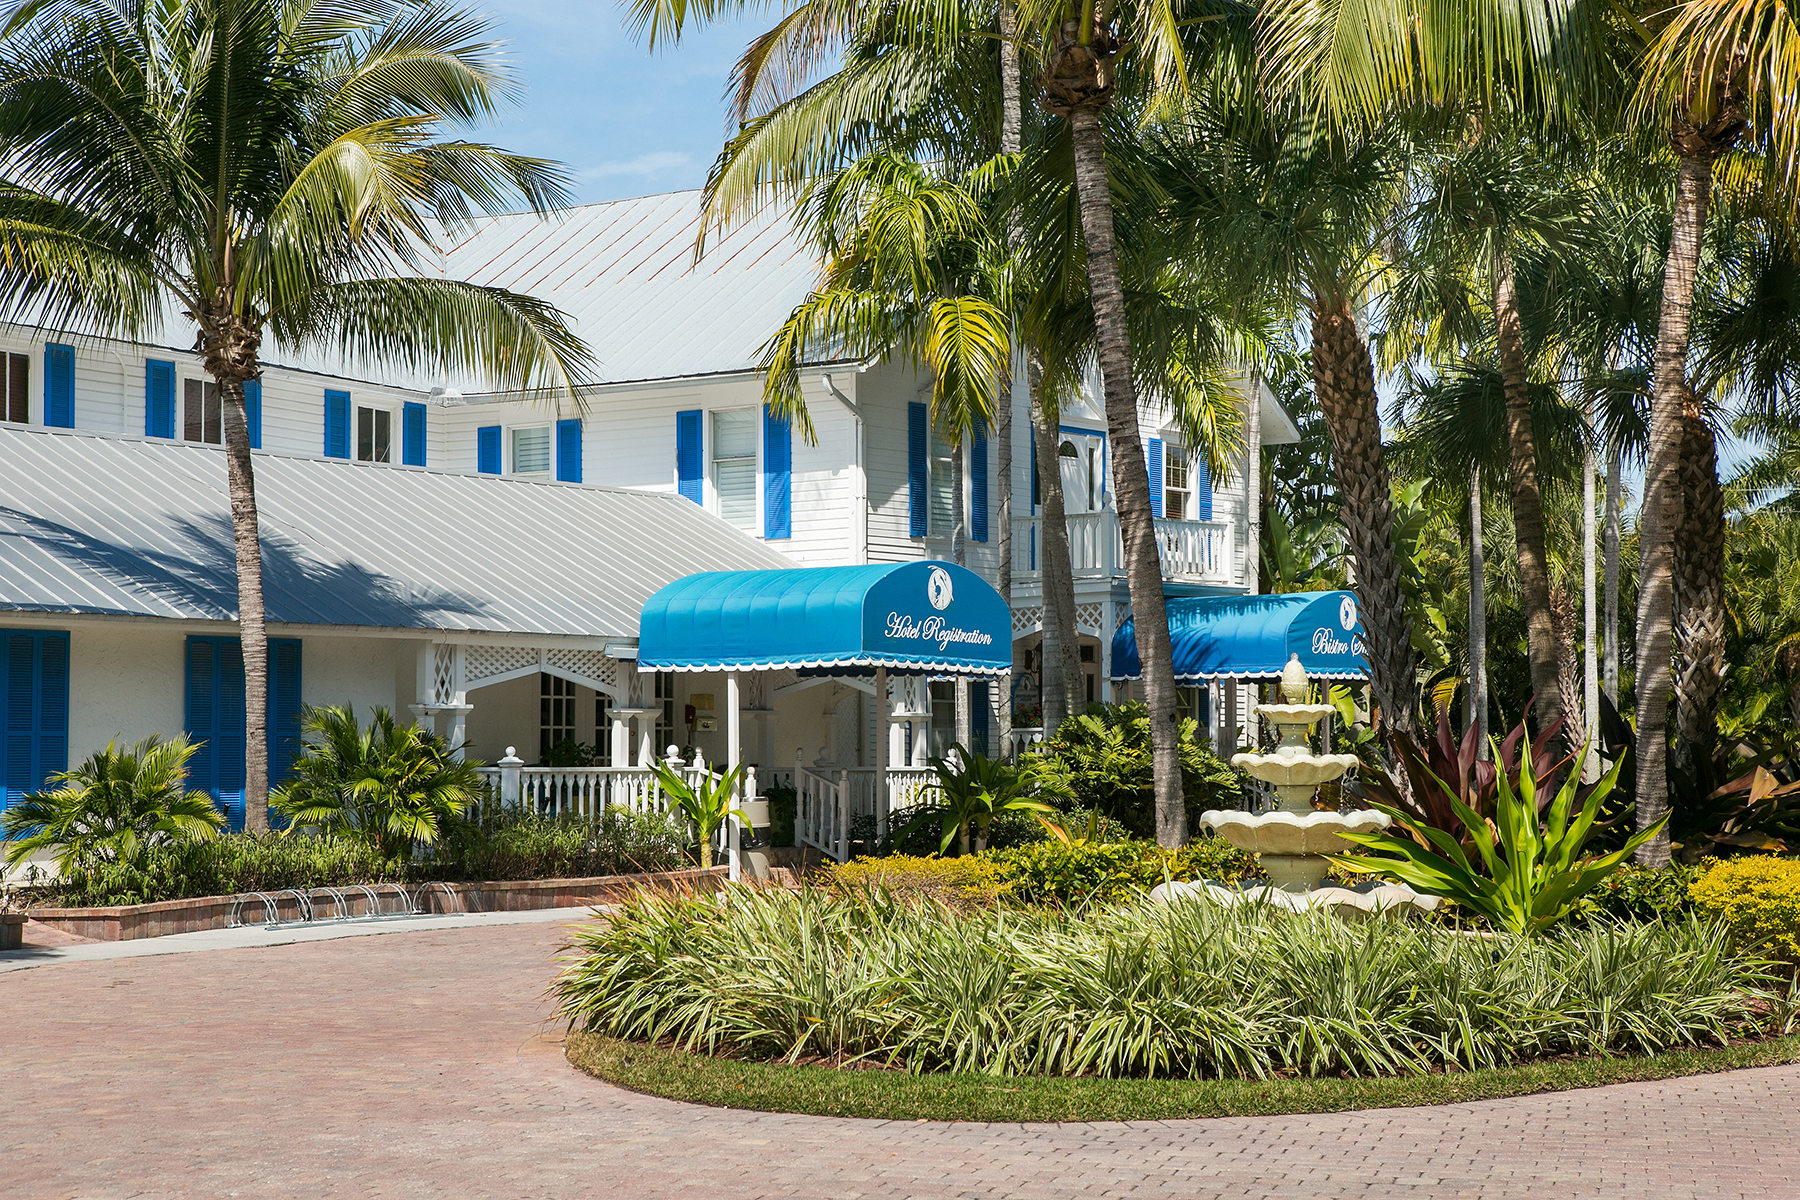 Property For Sale at MARCO ISLAND - OLDE MARCO INN